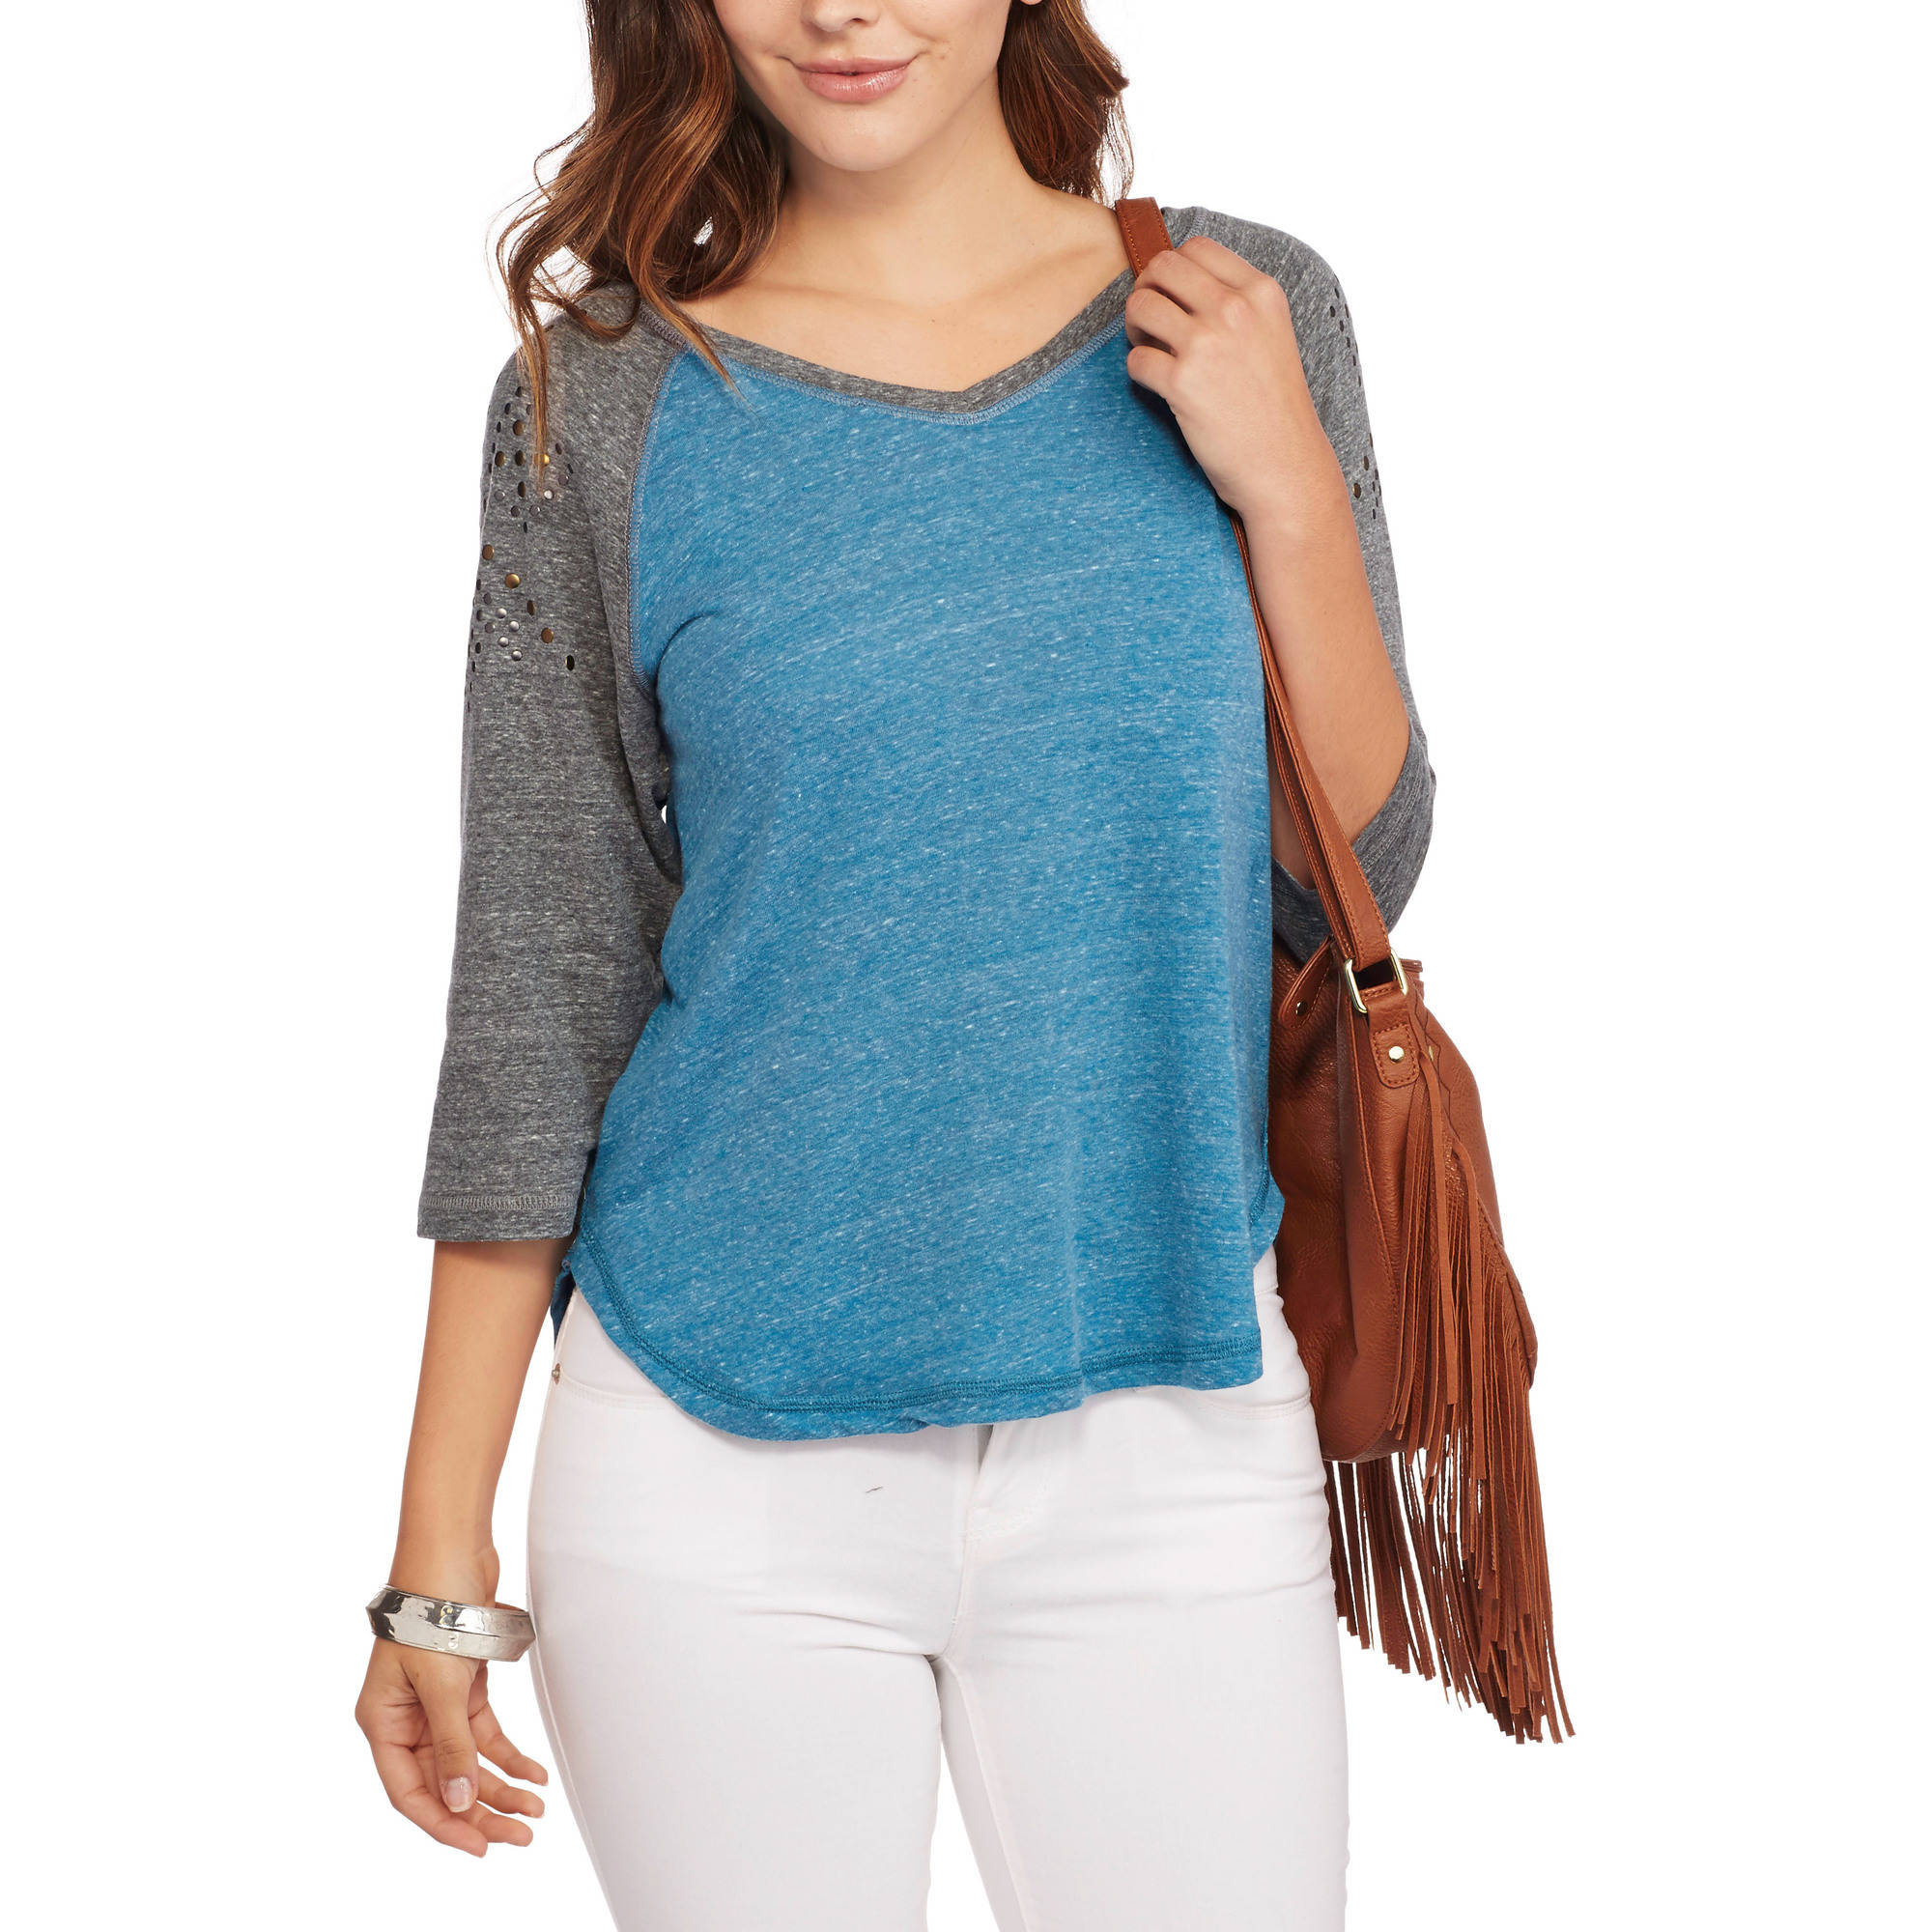 French Laundry Women's Embellished Baseball Tee